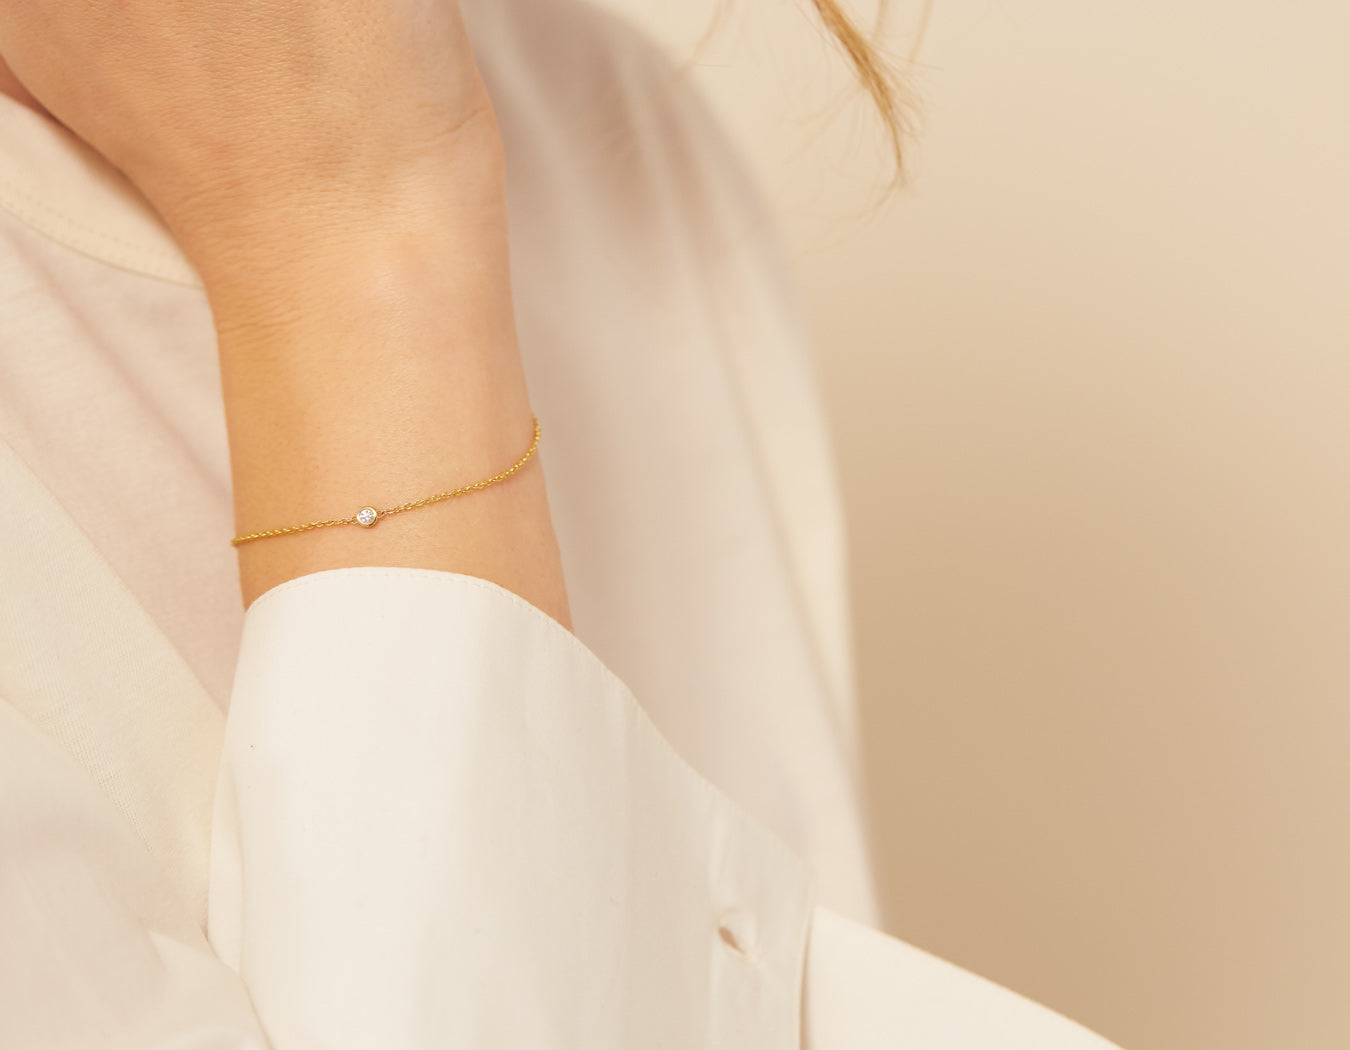 Model wearing simple classic Solitaire Bracelet delicate chain lobster clasp 14k yellow gold .04 ct round diamond Vrai & Oro, 14K Rose Gold